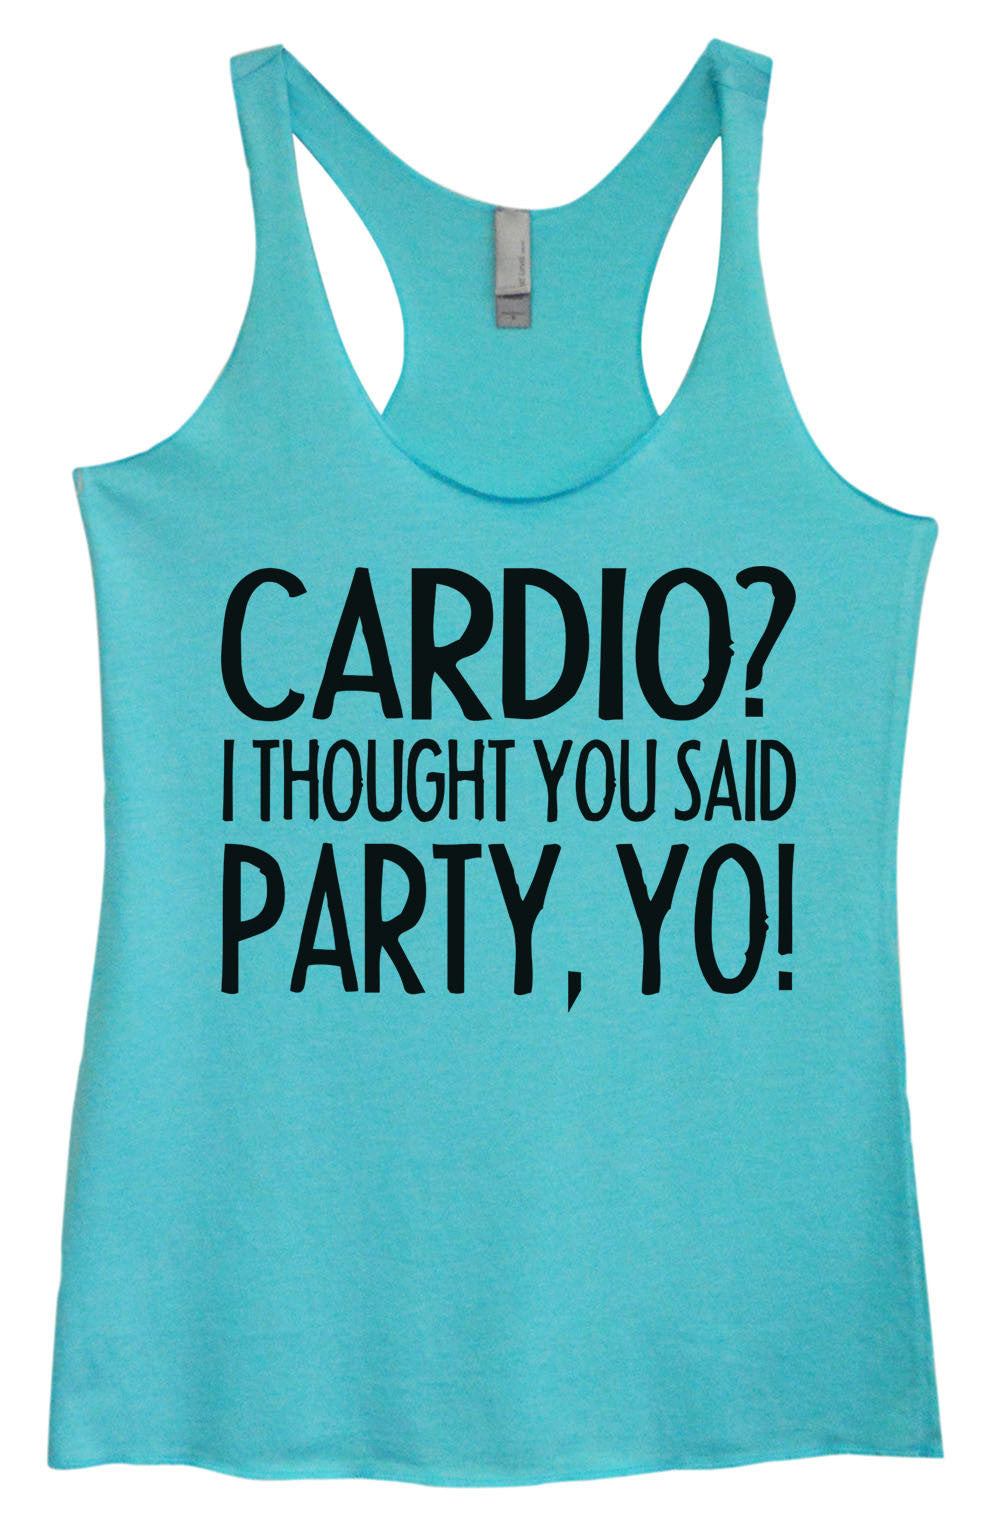 Womens Fashion Triblend Tank Top - Cardio? I Thought You Said Party, Yo! - Tri-932 - Funny Shirts Tank Tops Burnouts and Triblends  - 1